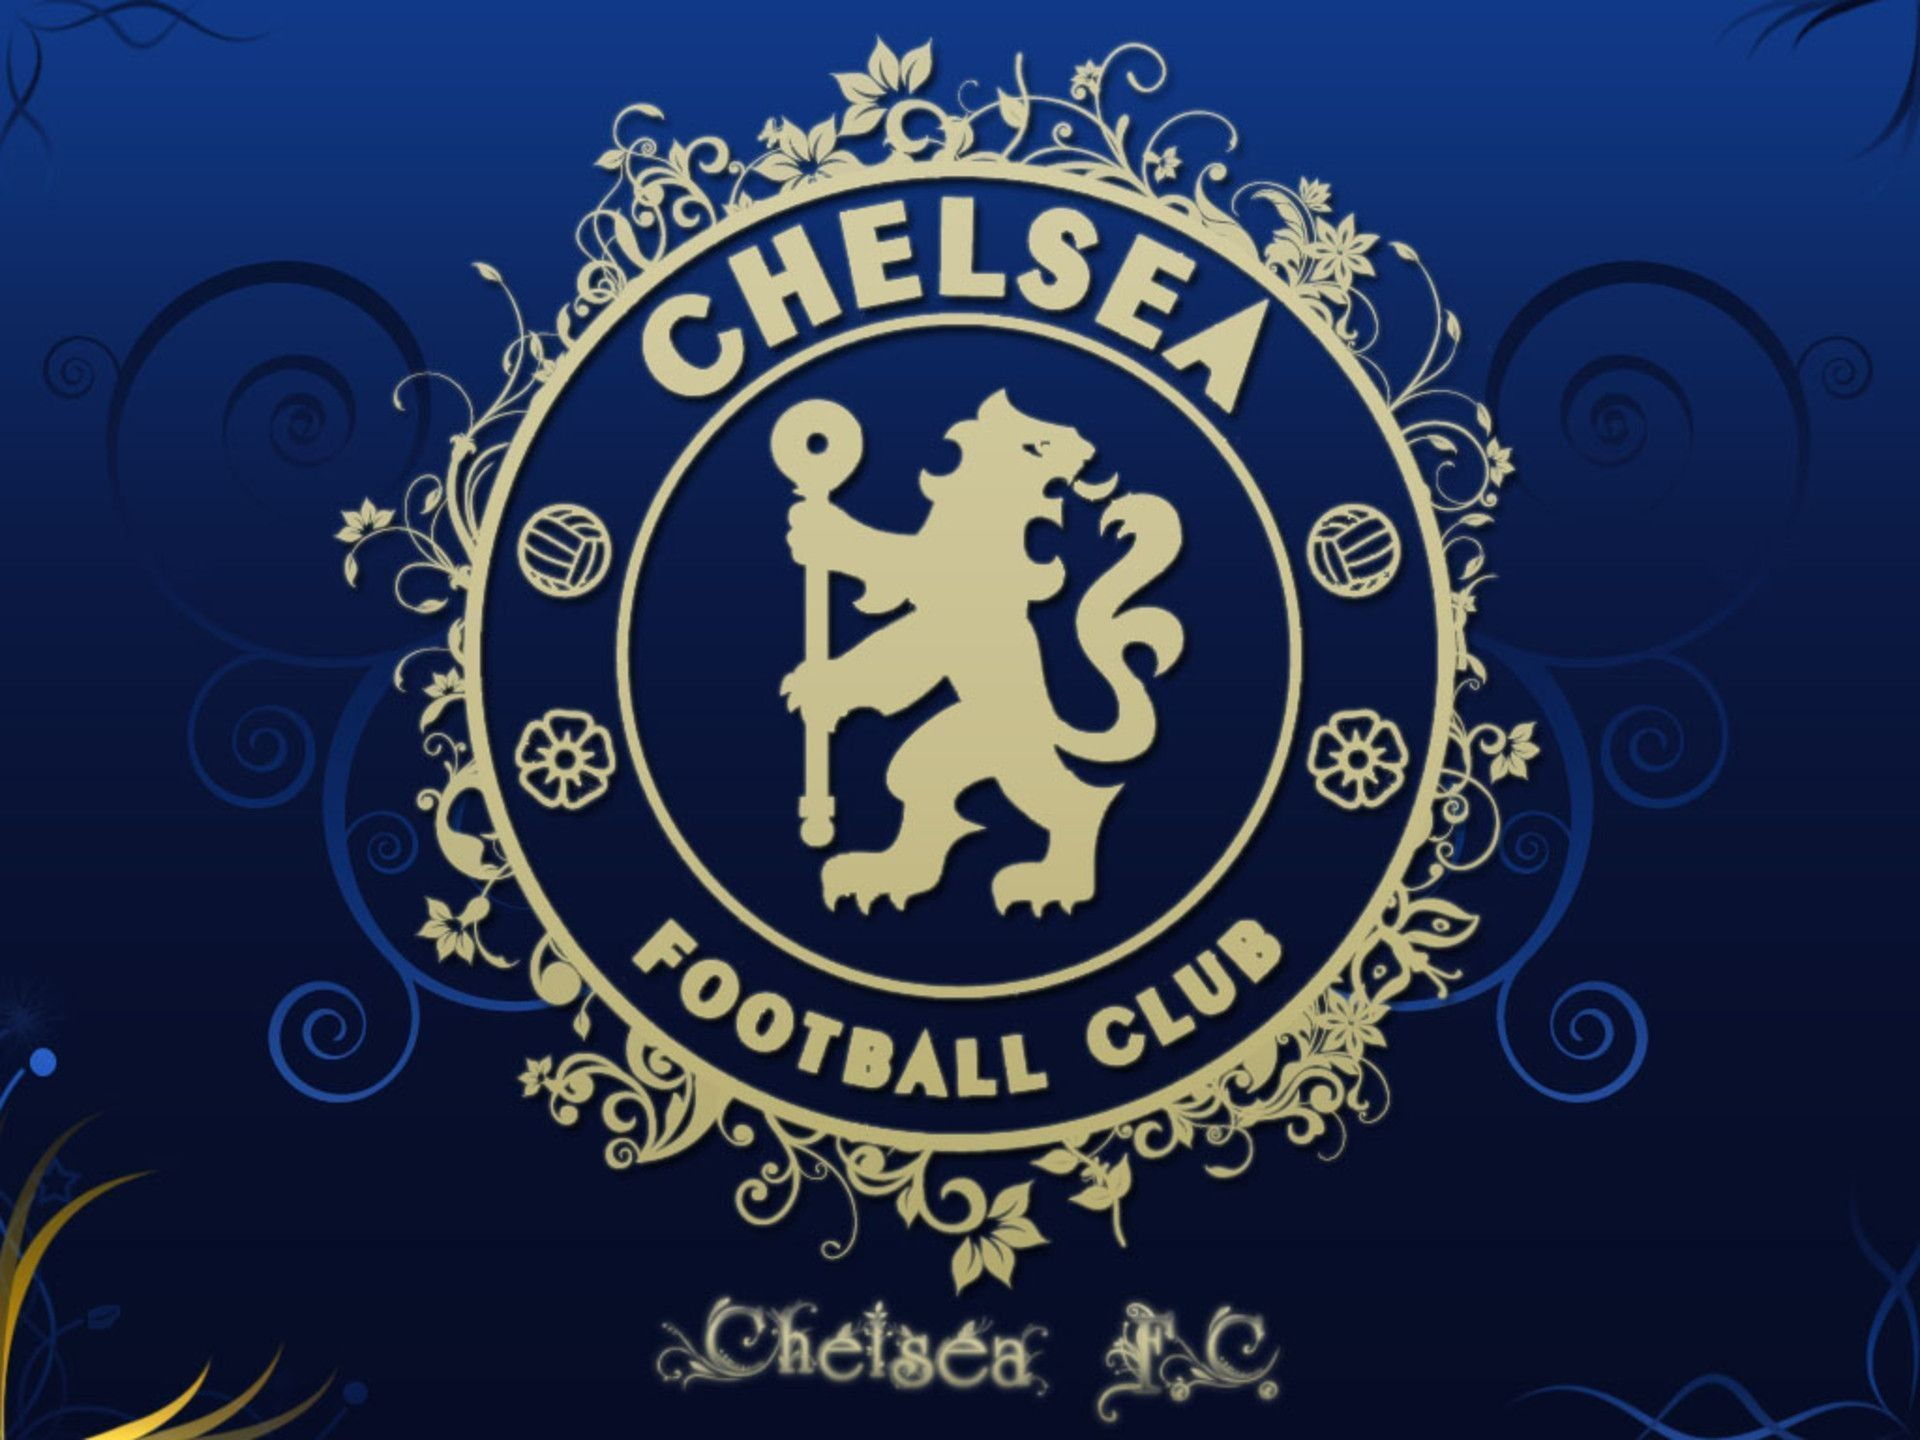 1920x1440 Free Chelsea Wallpaper Download